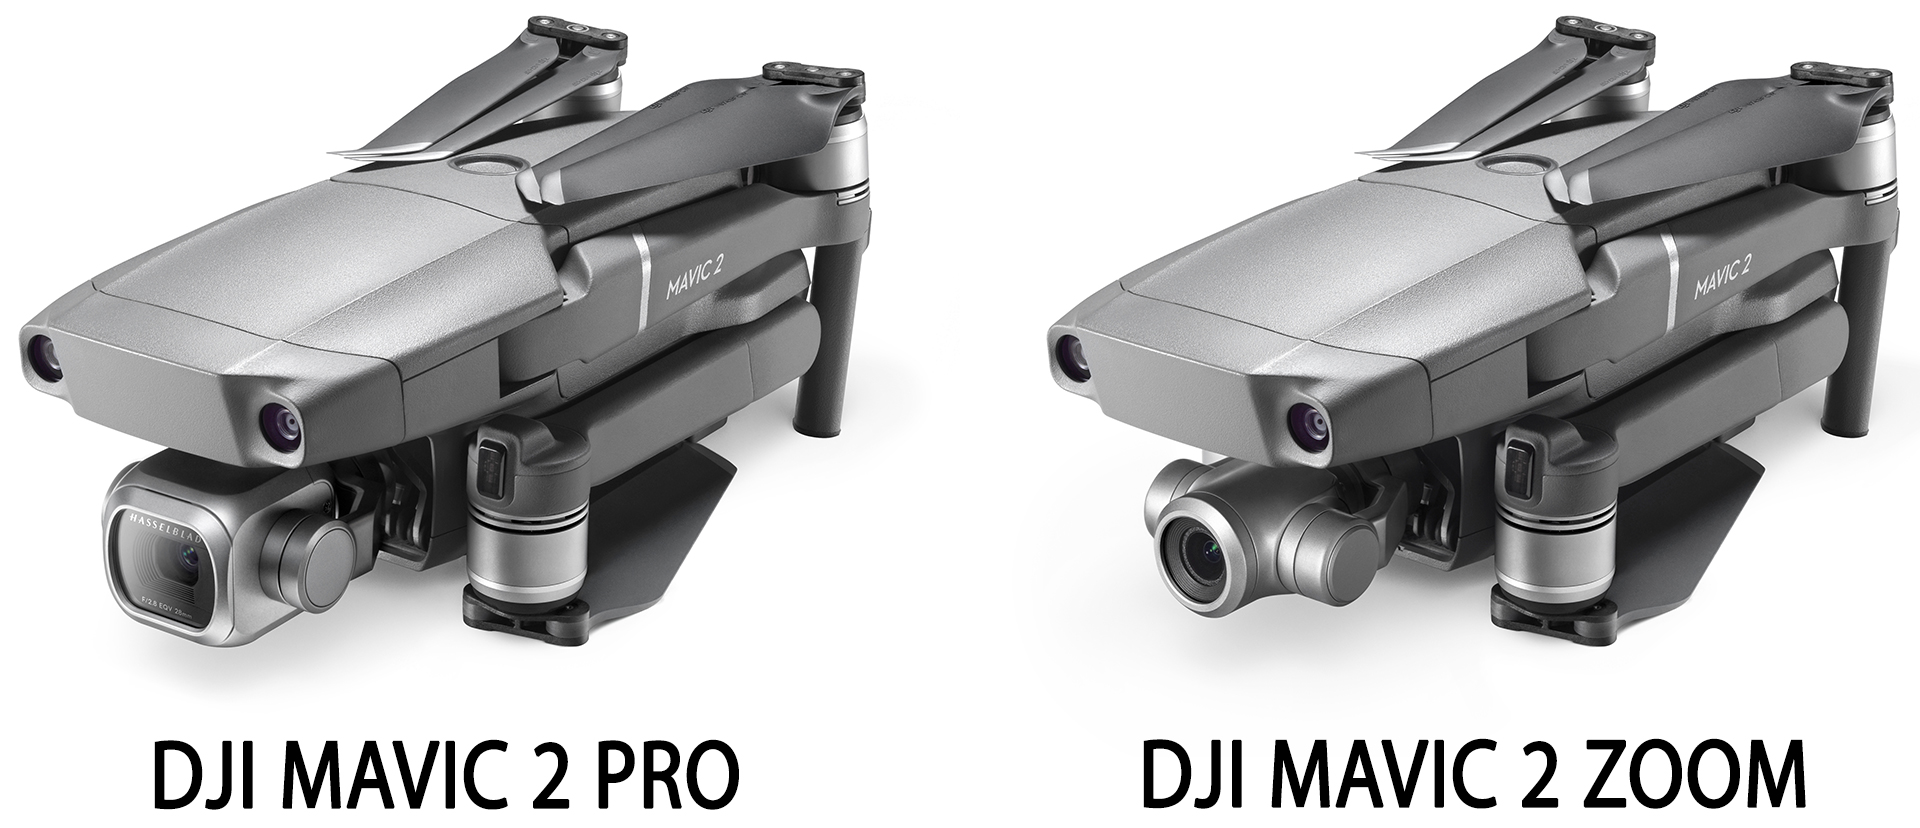 8dcd6a05a7d Starting with the Mavic 2 Pro  This variant features a powerful new  Hasselblad camera with a 20MP 1